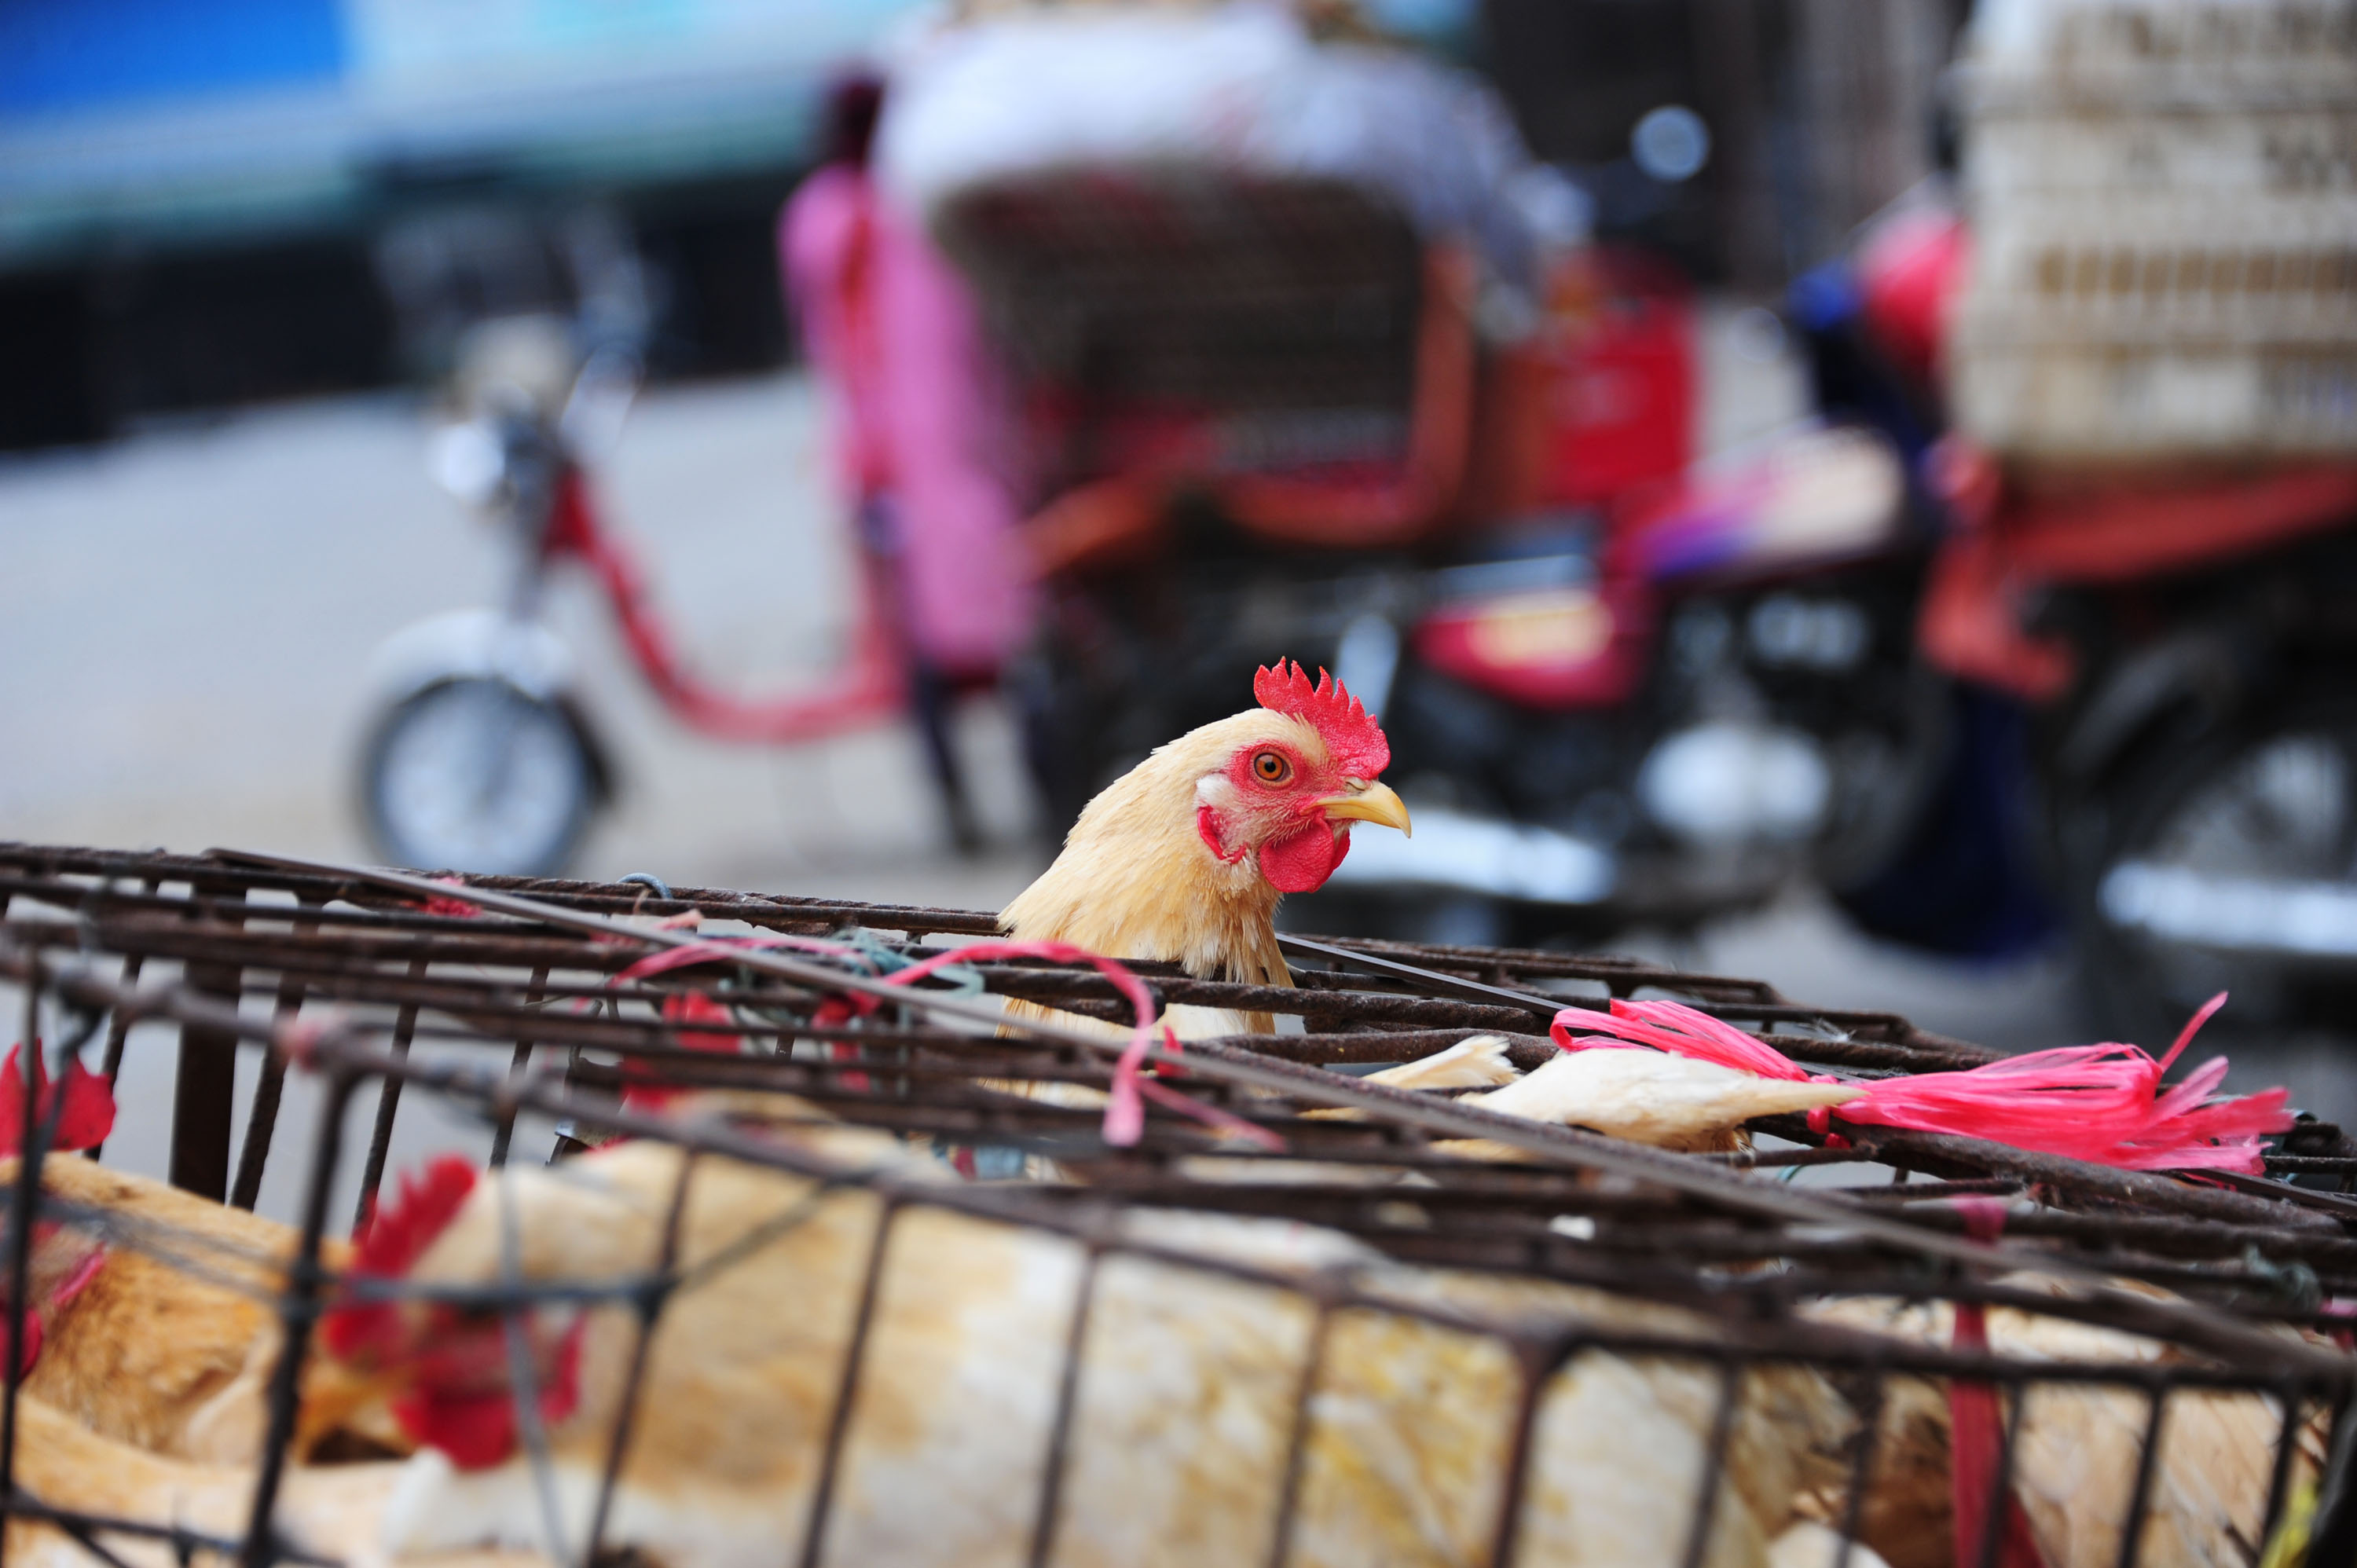 Live chickens for sale in a cage at a free market in Jiangmen city, south China's Guangdong province, on March 1, 2015